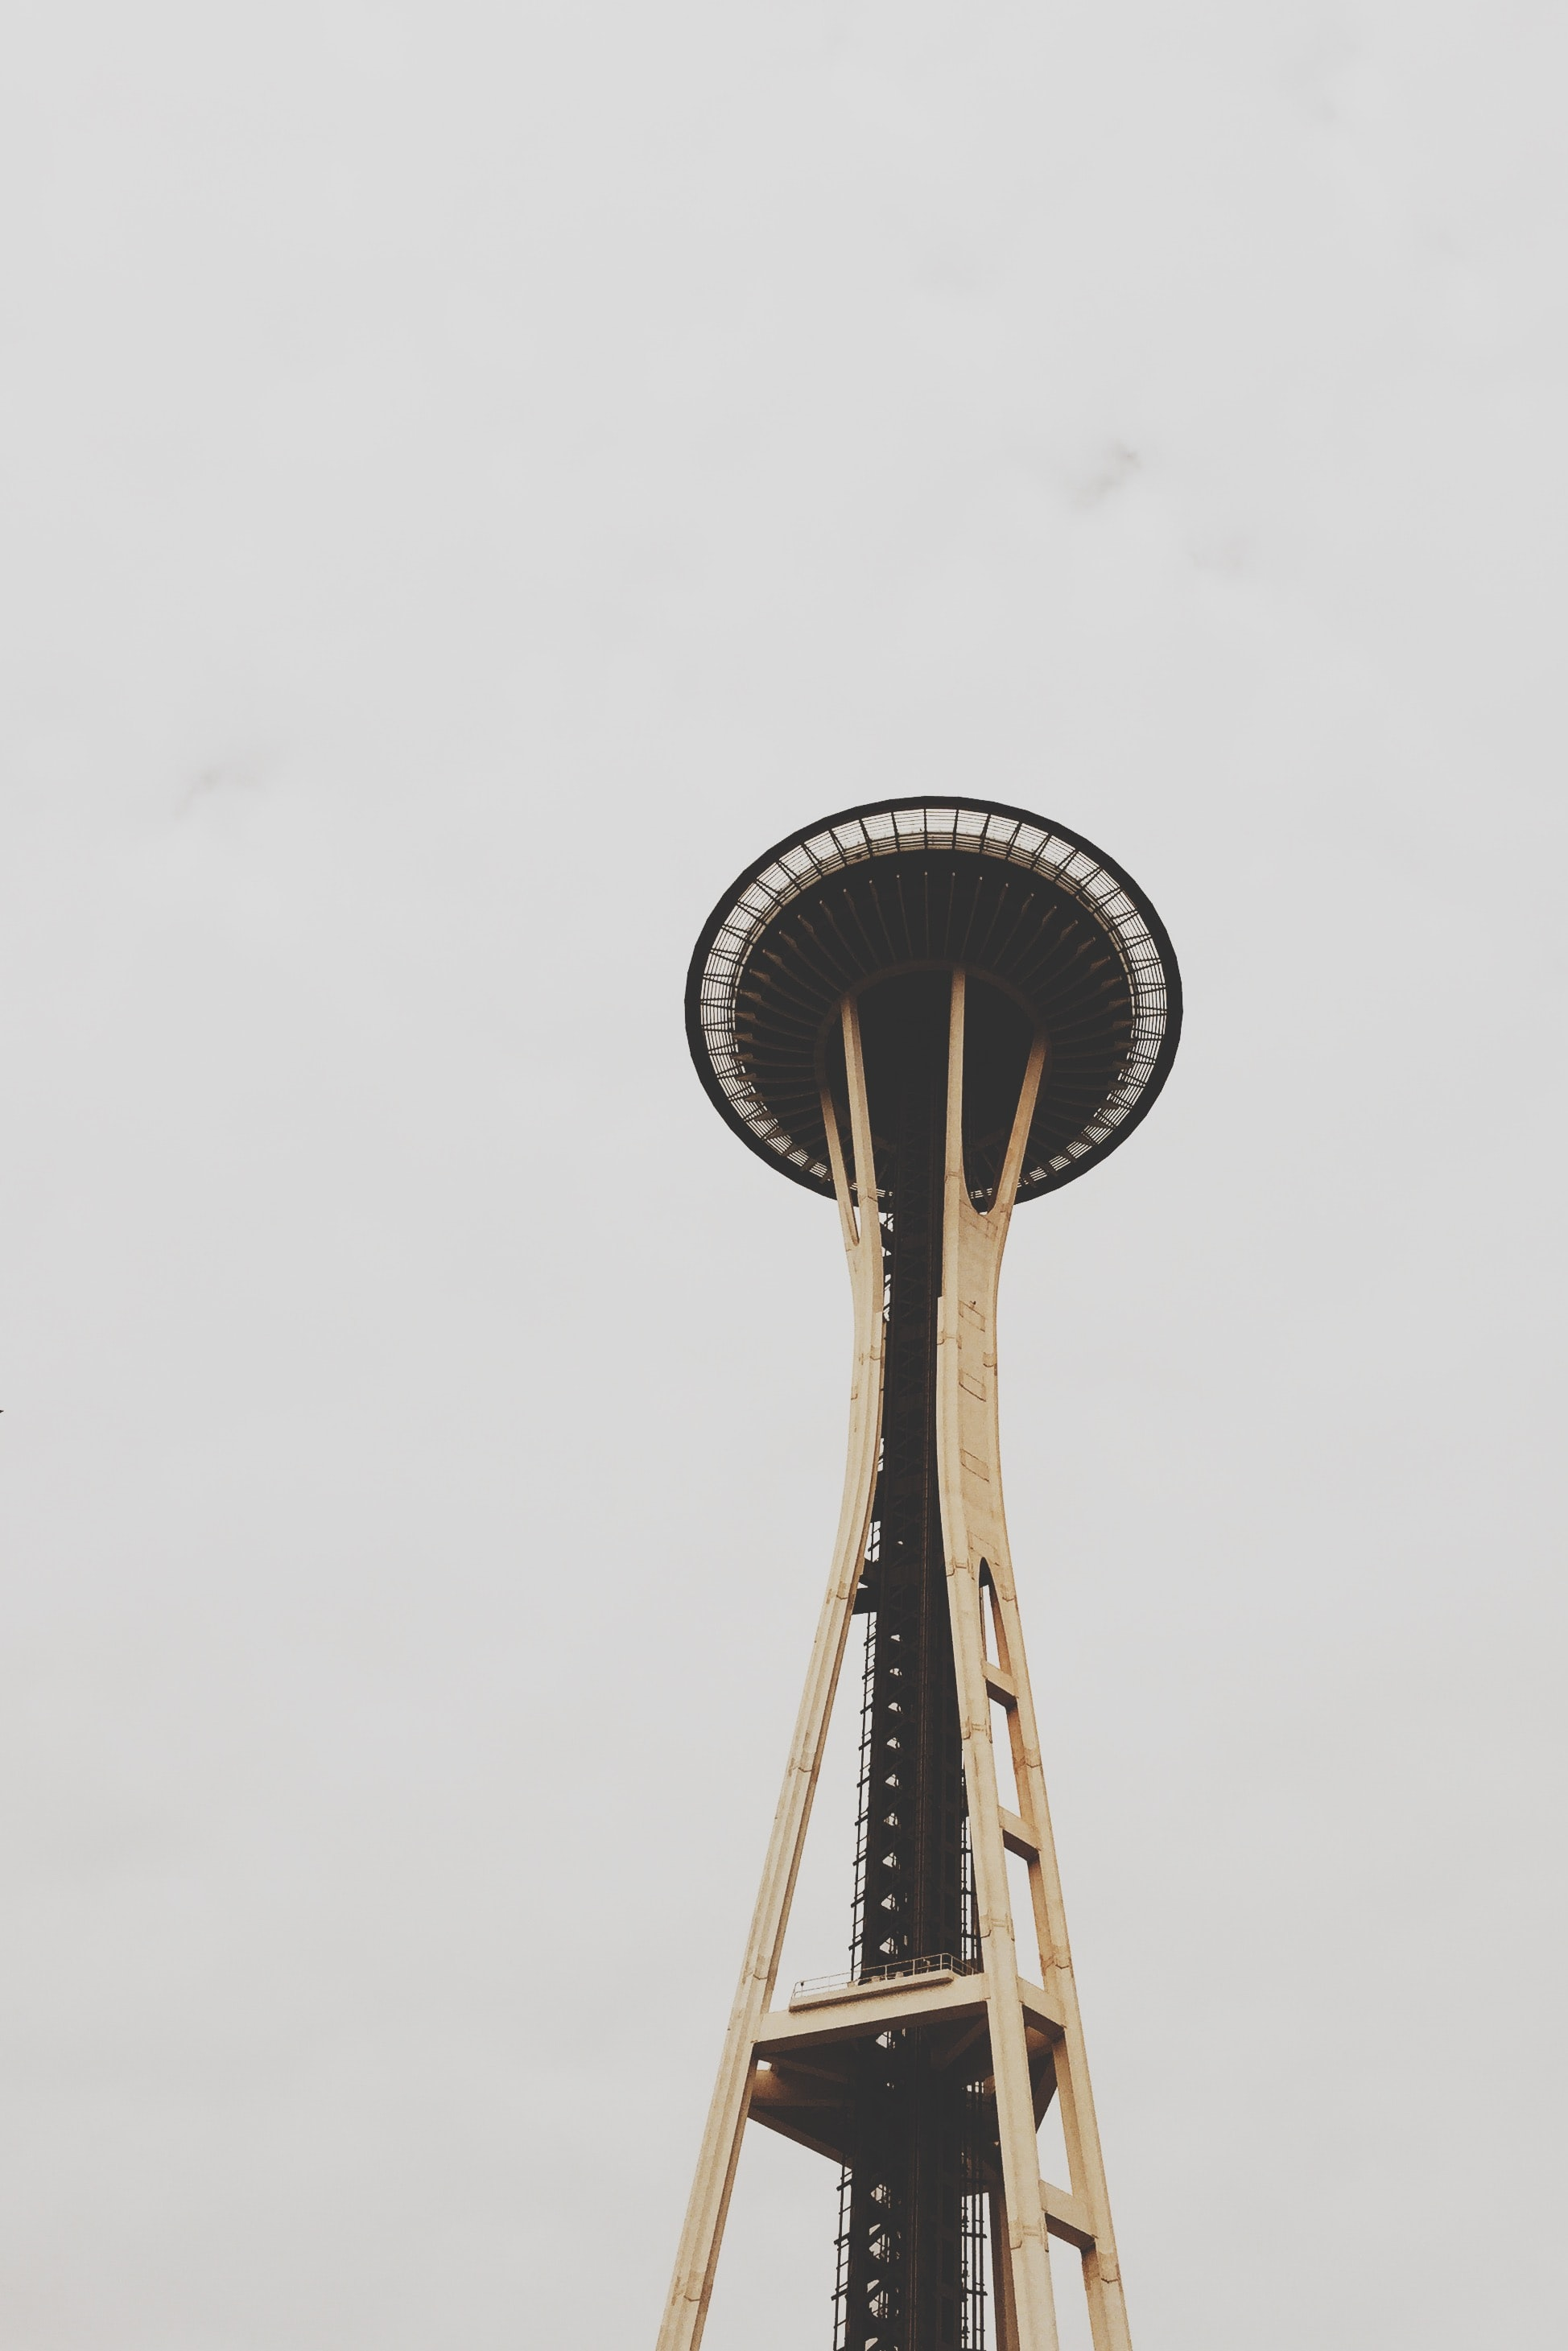 The Space Needle observation tower in Seattle against a white sky